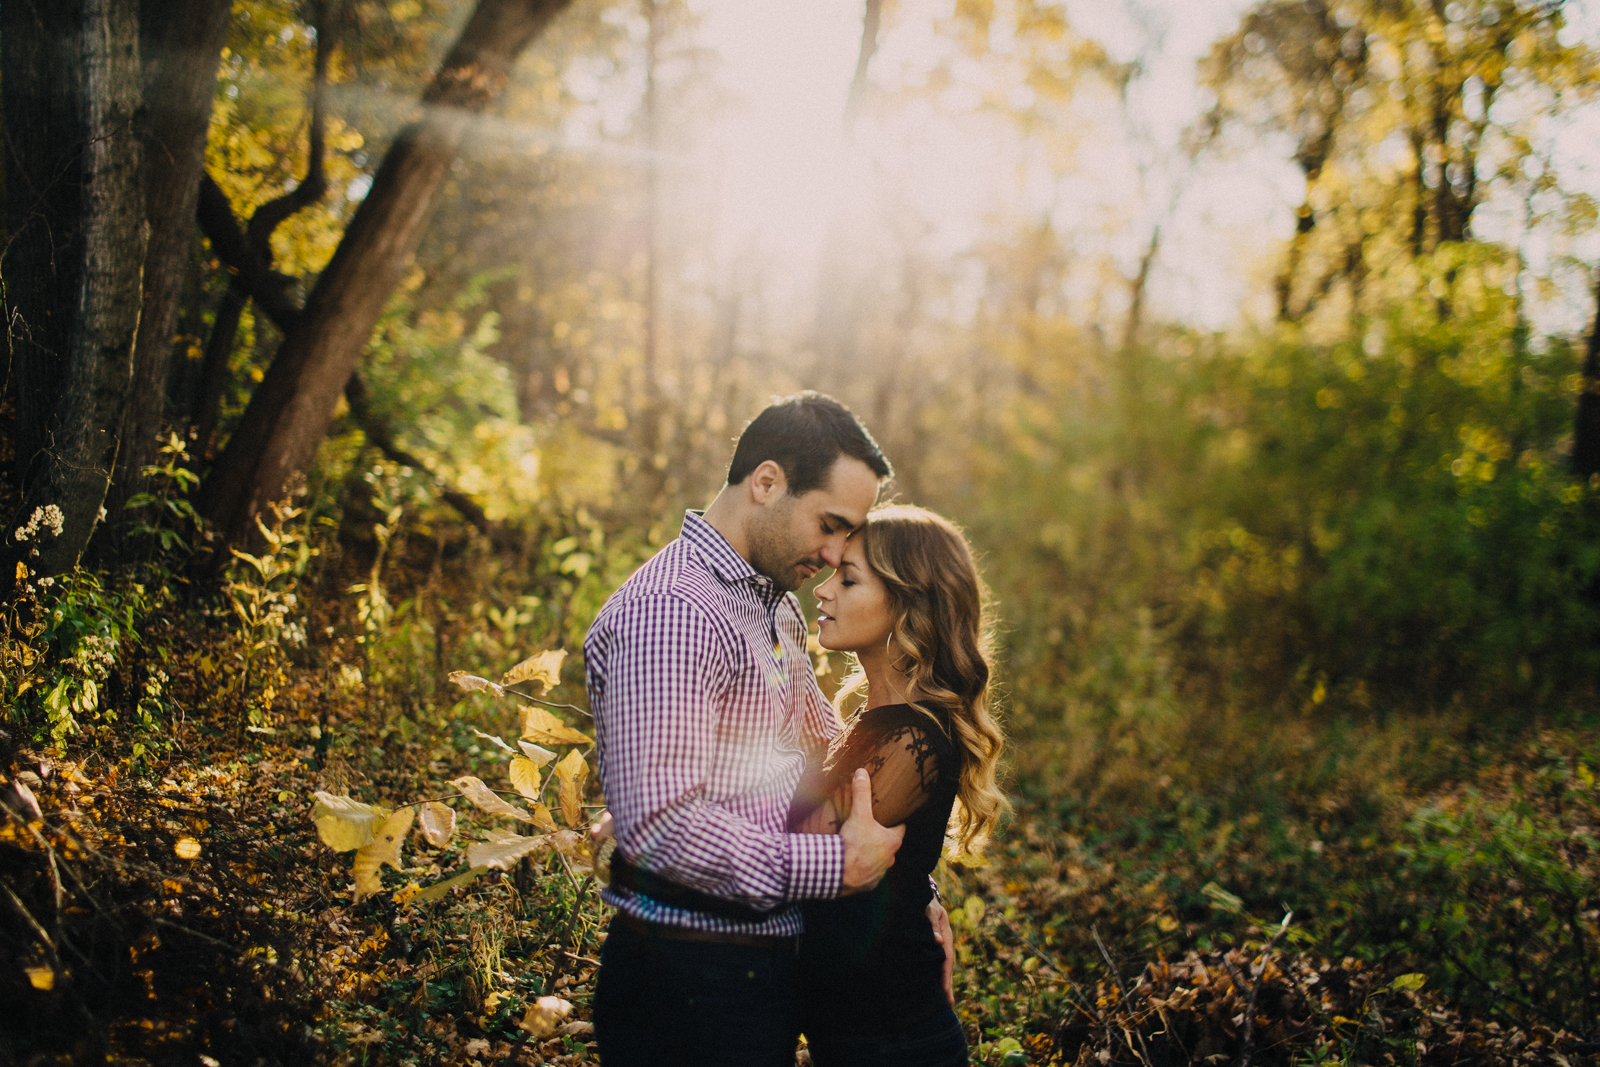 matea state park indiana fort wayne engagement session sarah cusson photography-18.jpg